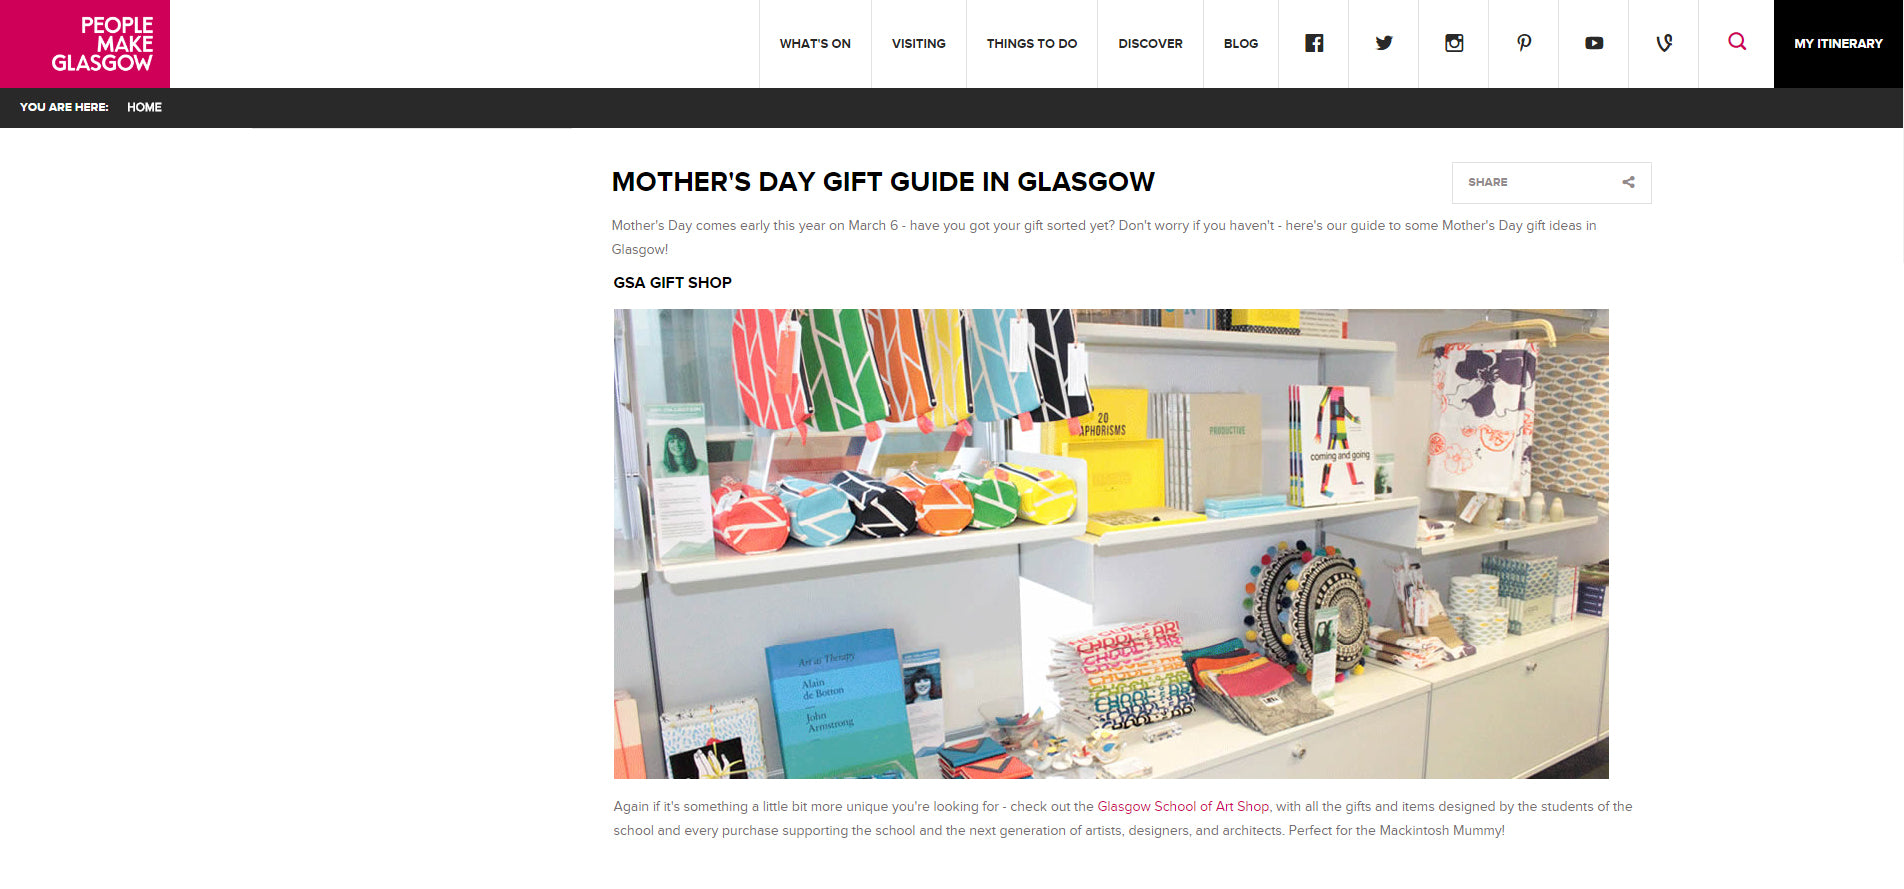 People Make Glasgow - Mother's Day gift guide